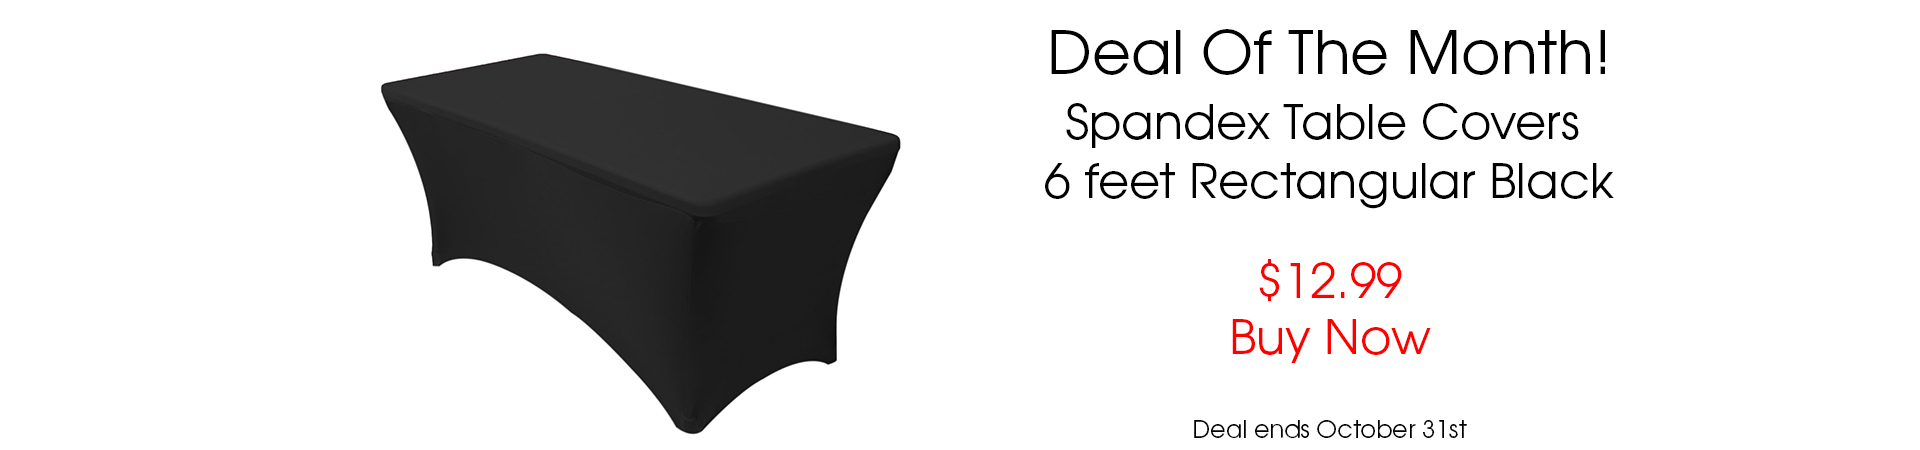 6 ft spandex table covers on sale